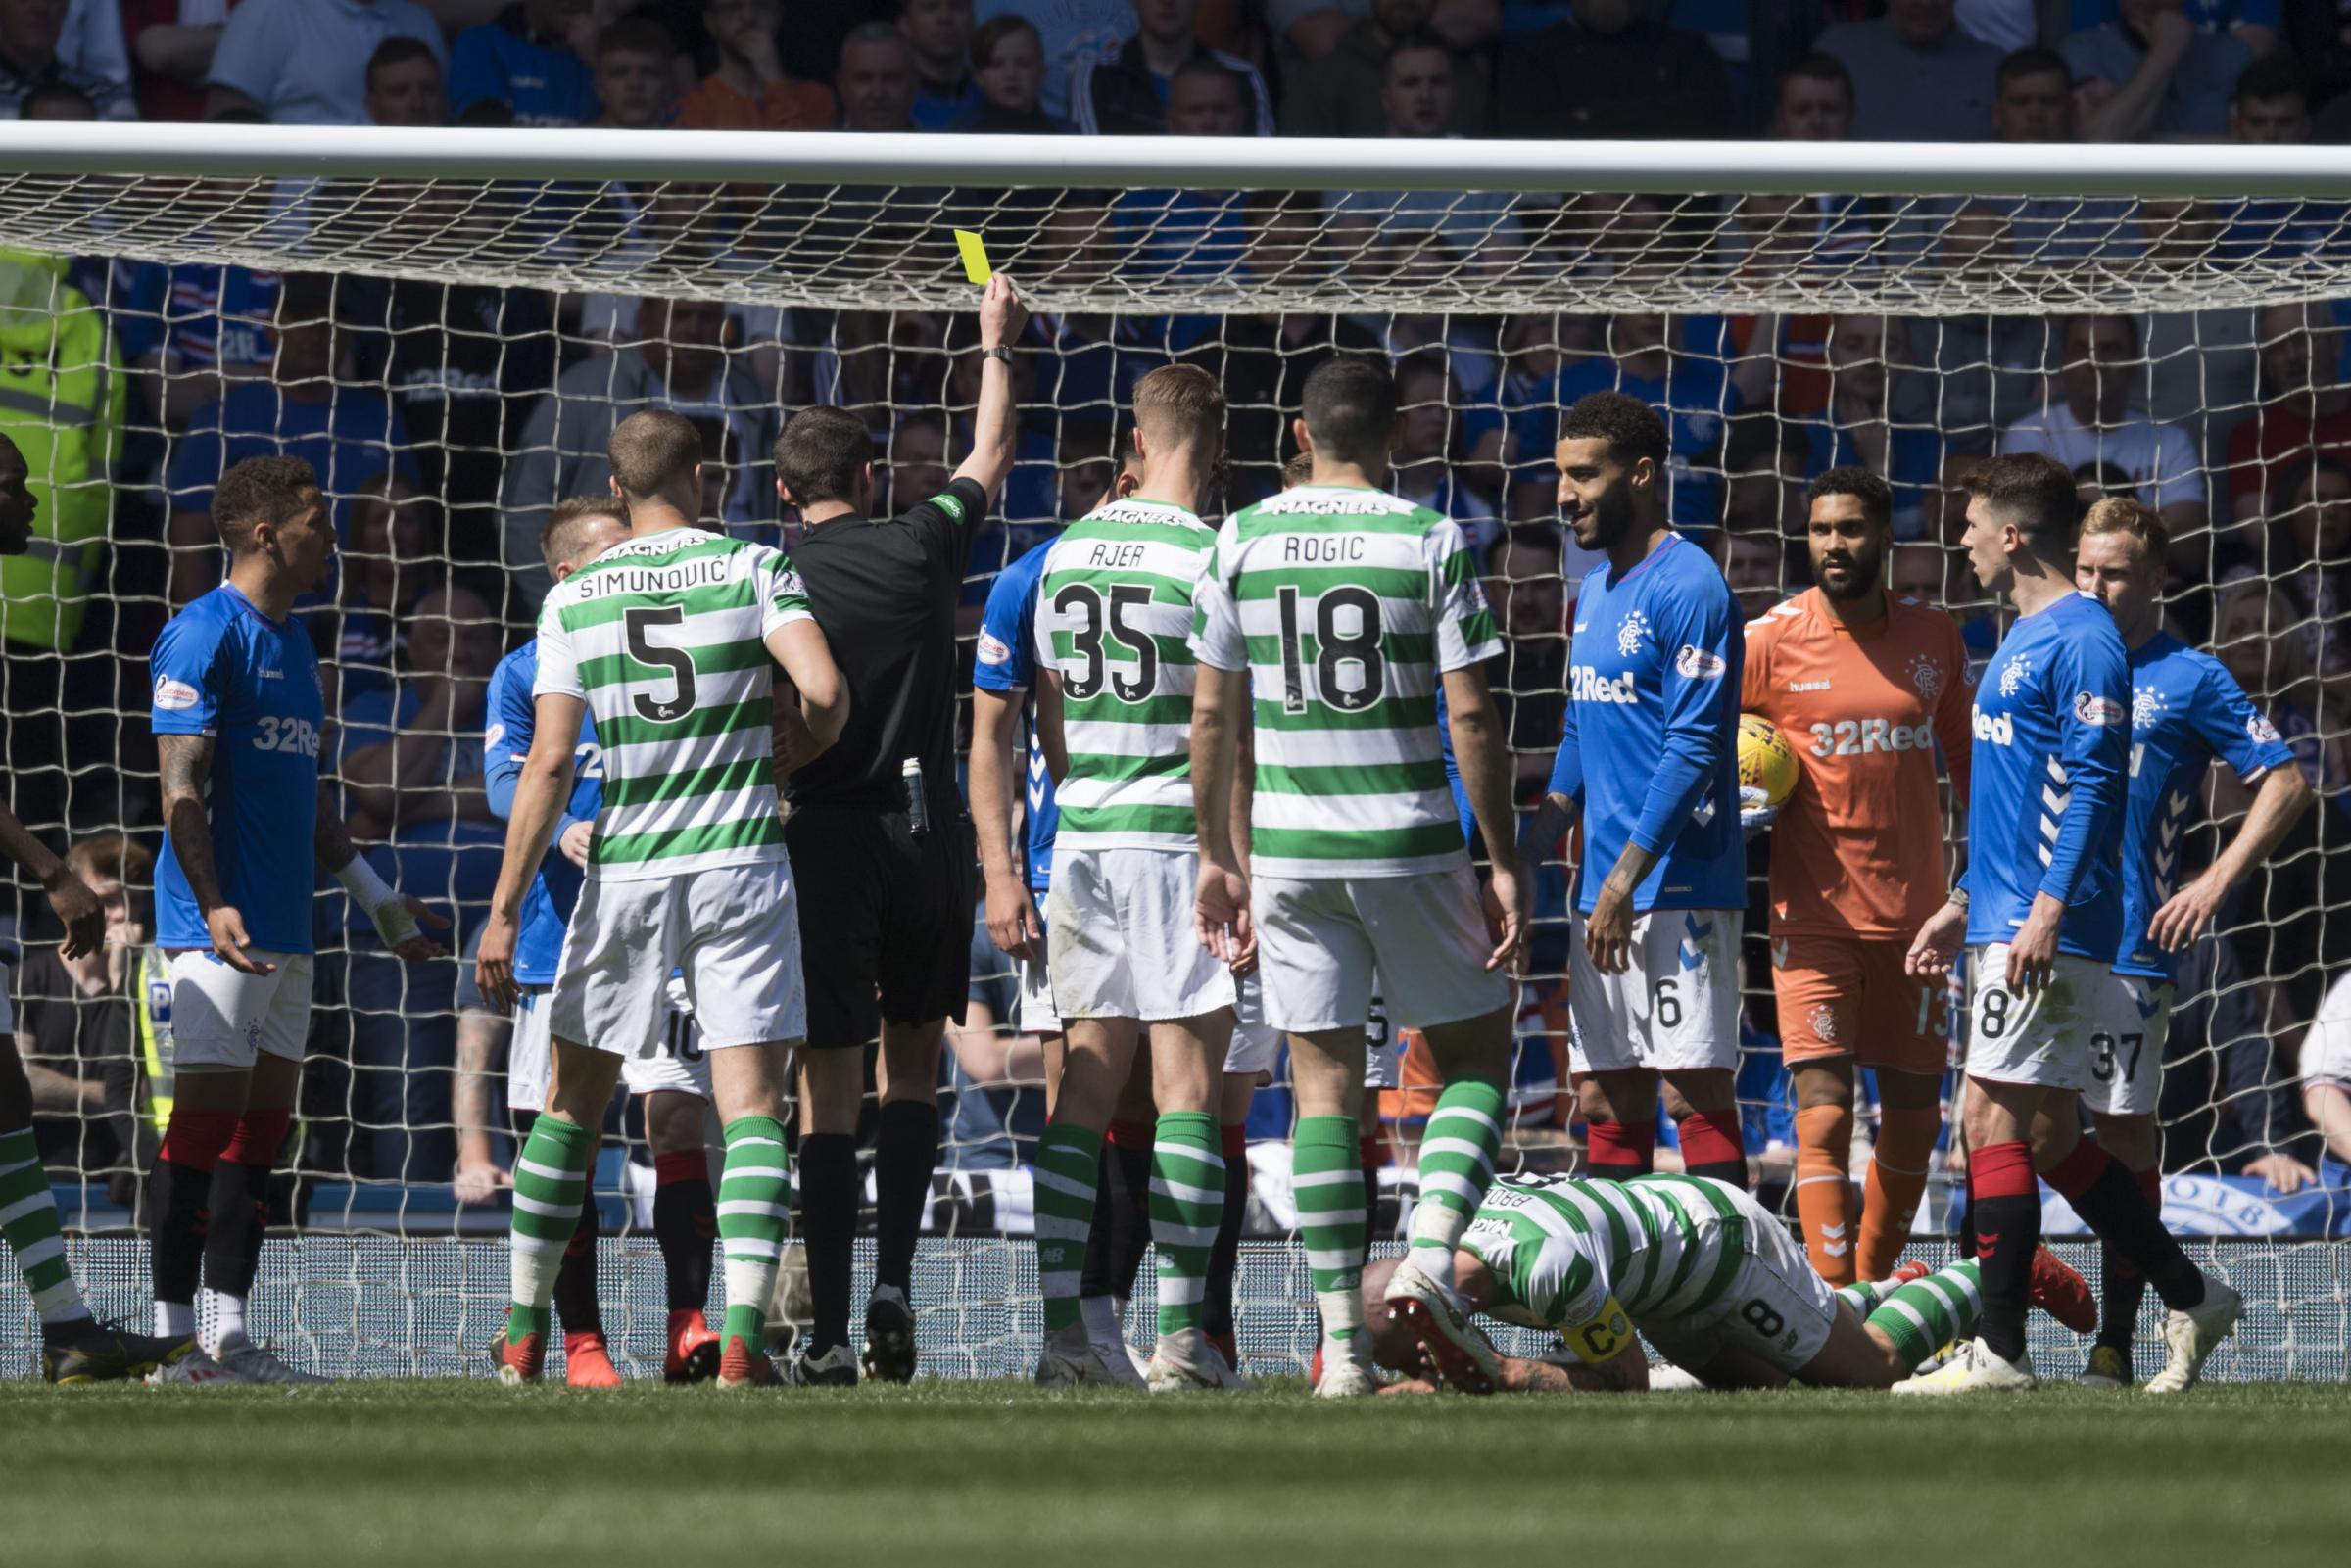 Celtic brand decision to clear Rangers defender Jon Flanagan for Scott Brown elbow a